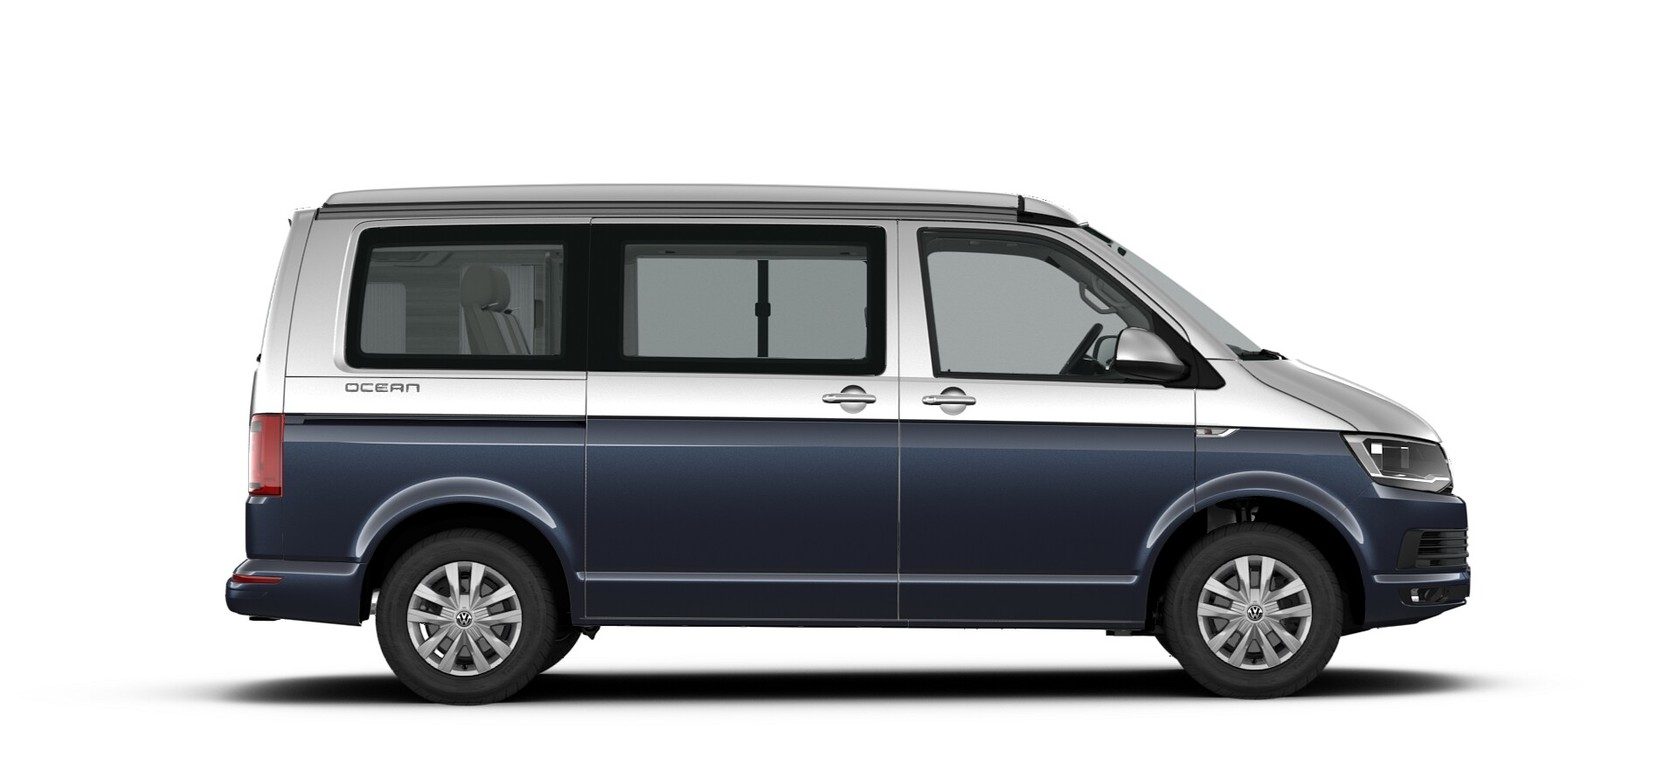 Acapulco Blue/Starlight Silver two tone metallic lak - Volkswagen California Ocean